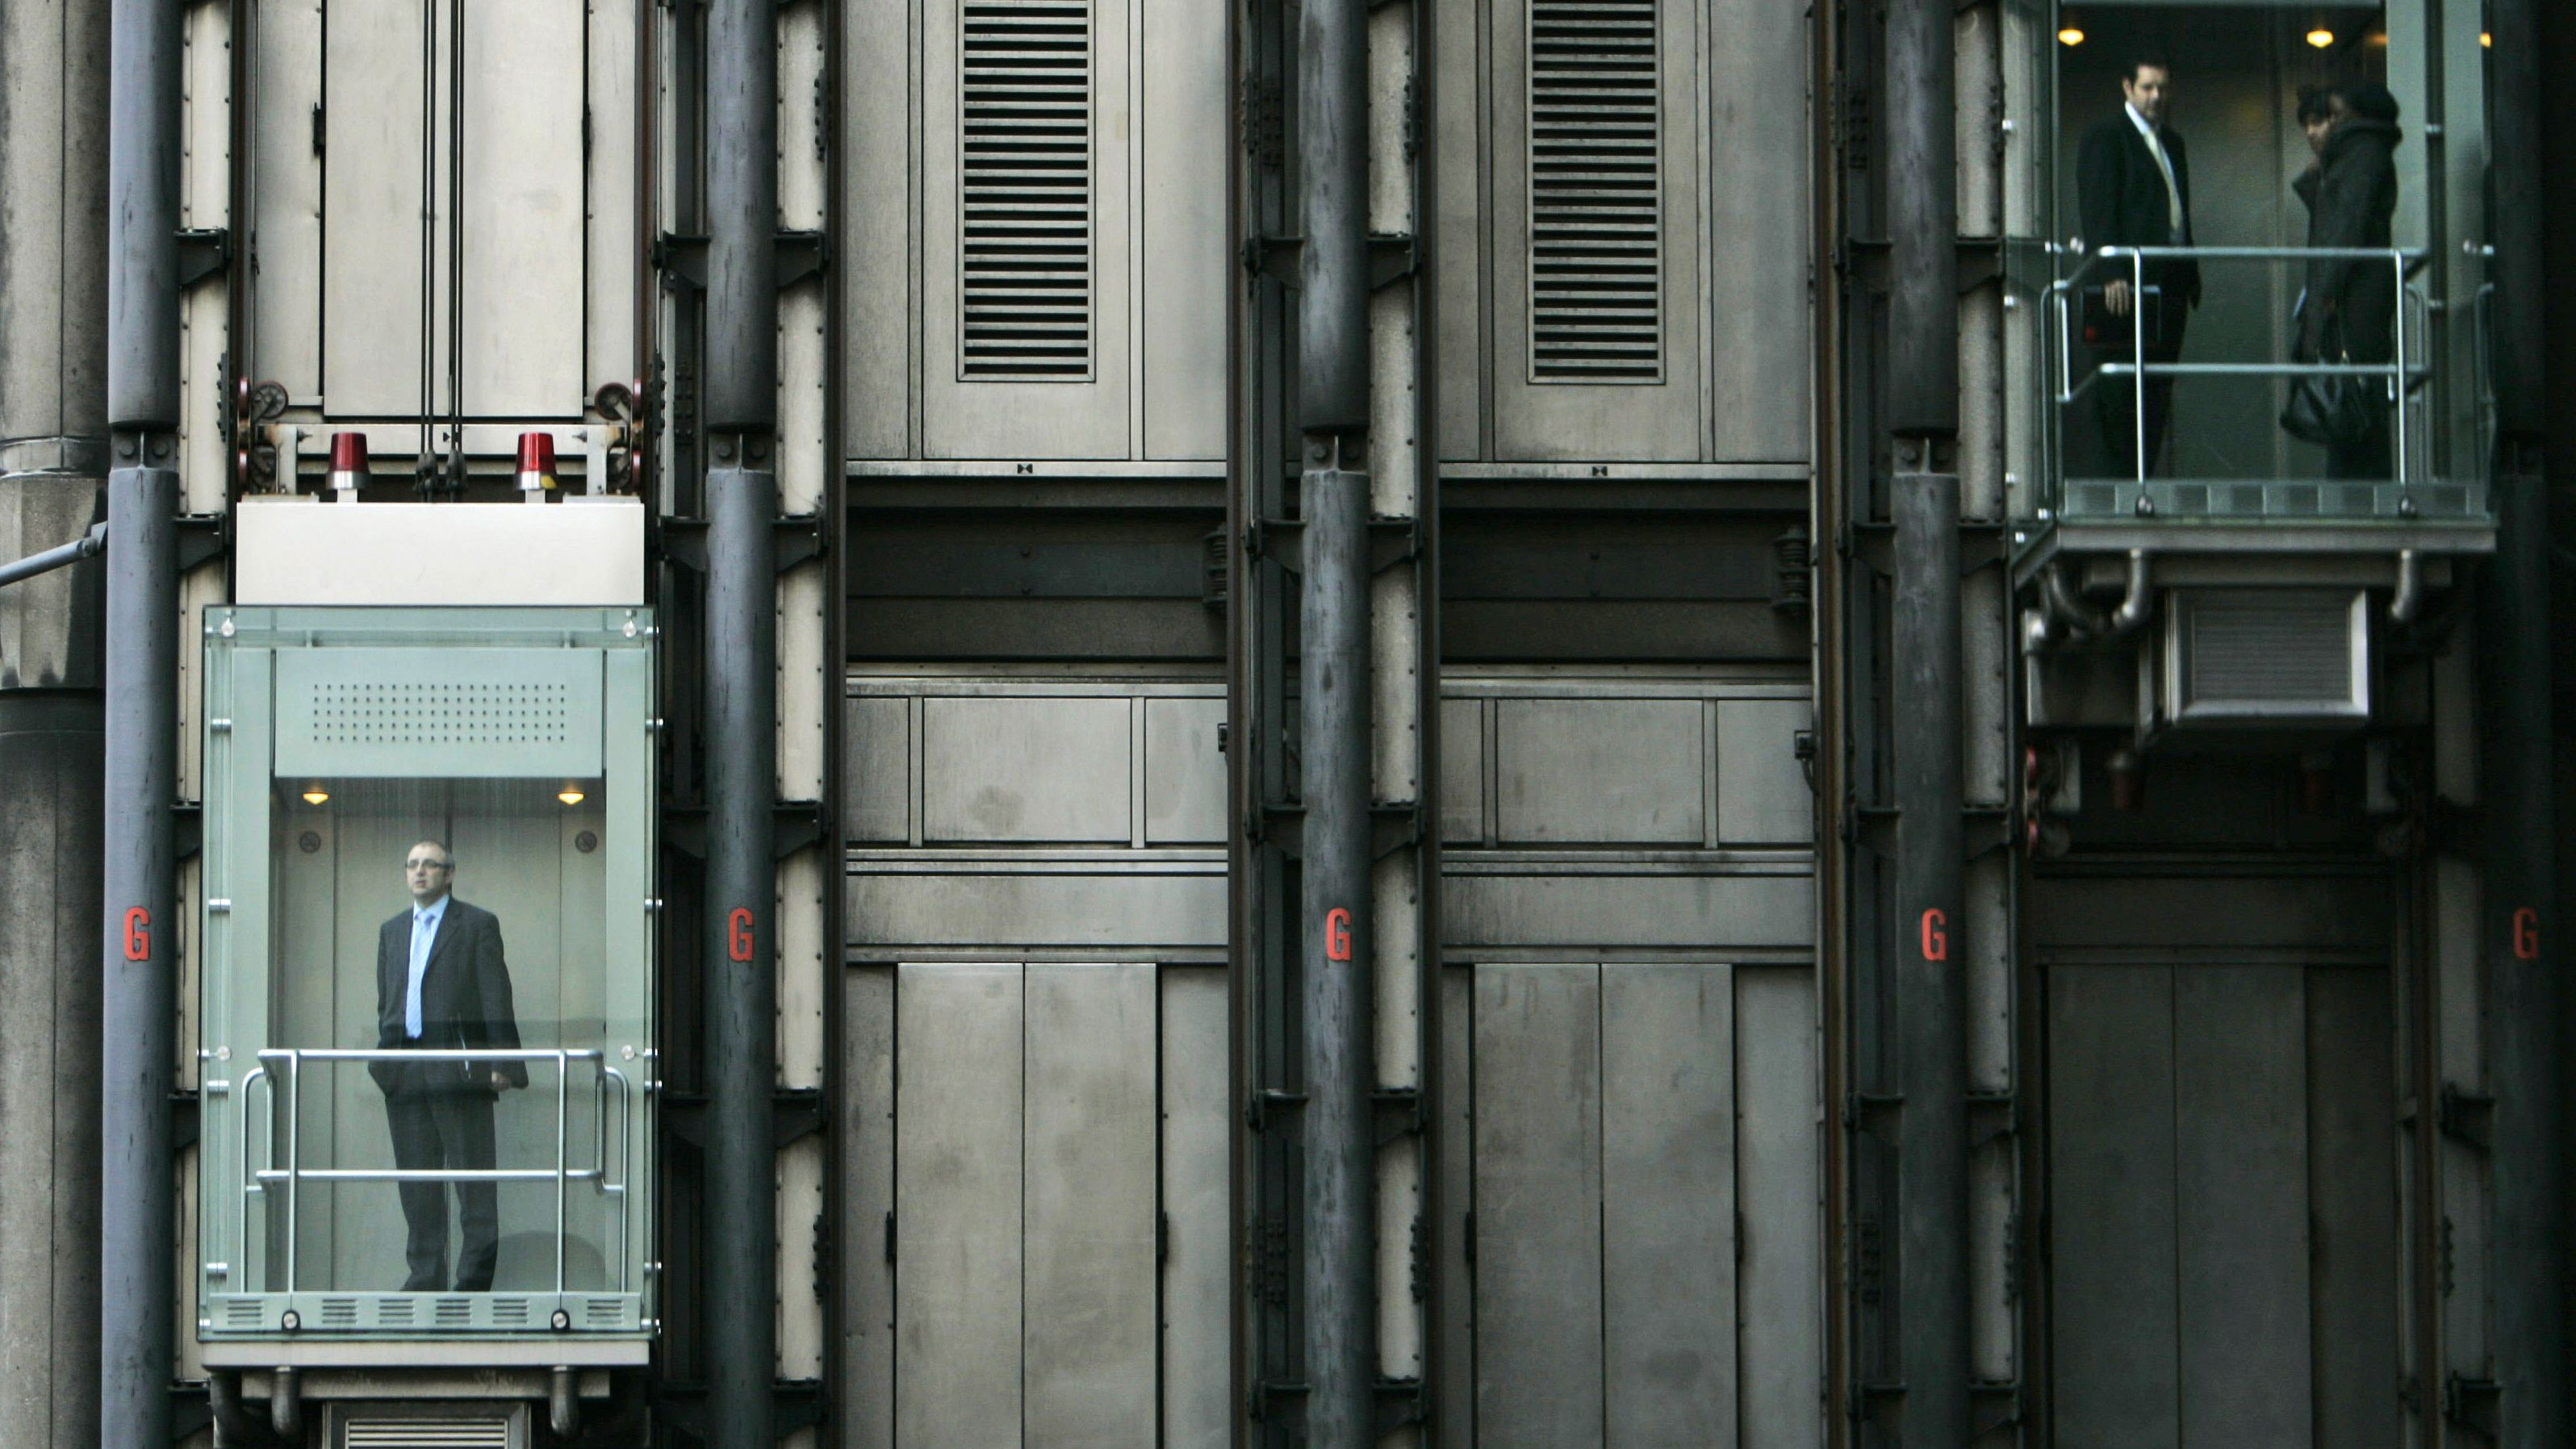 People are seen riding elevators on a building in central London's City financial district.